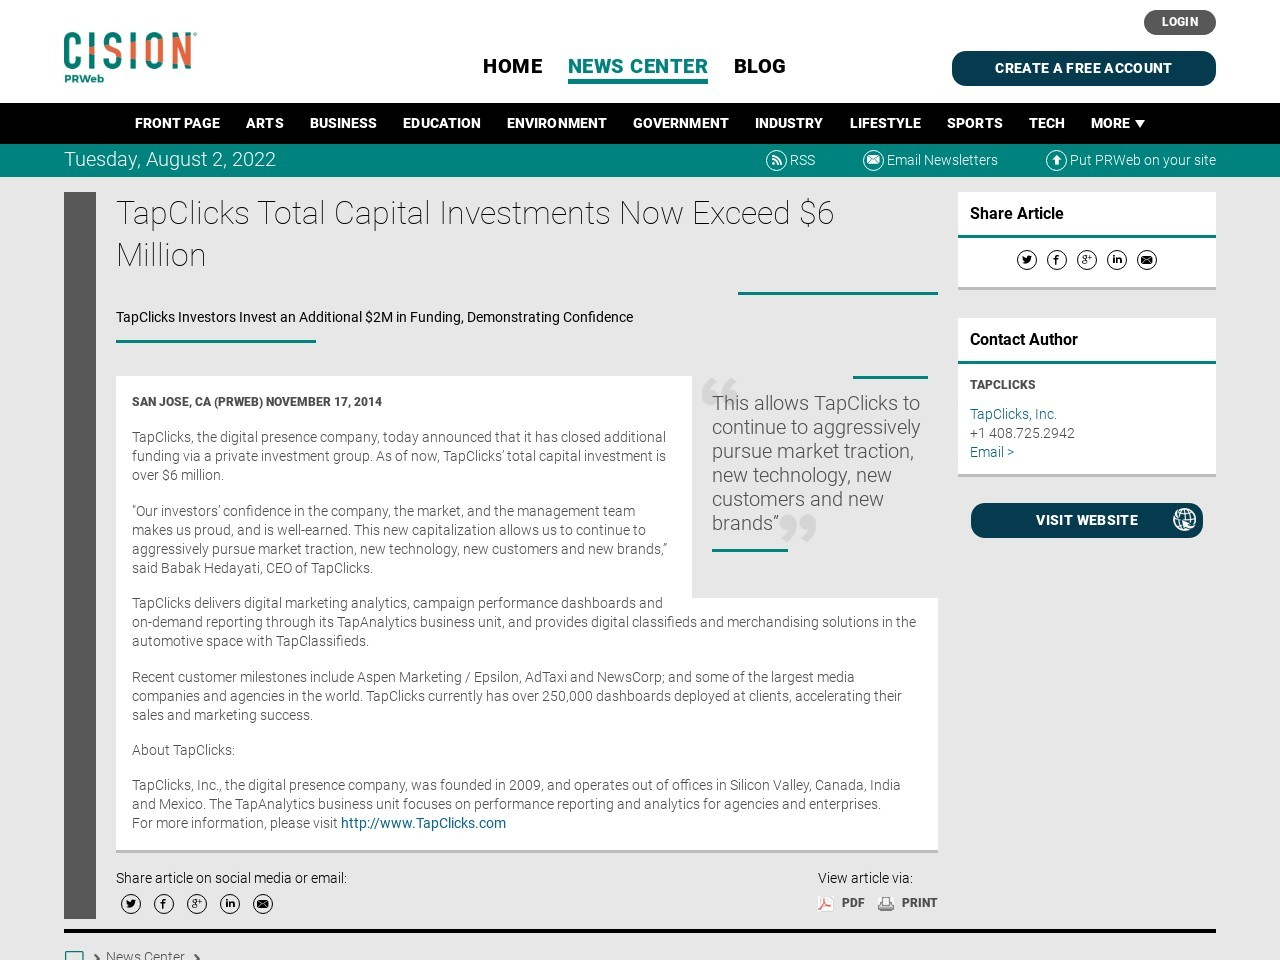 TapClicks Total Capital Investments Now Exceed $6 Million